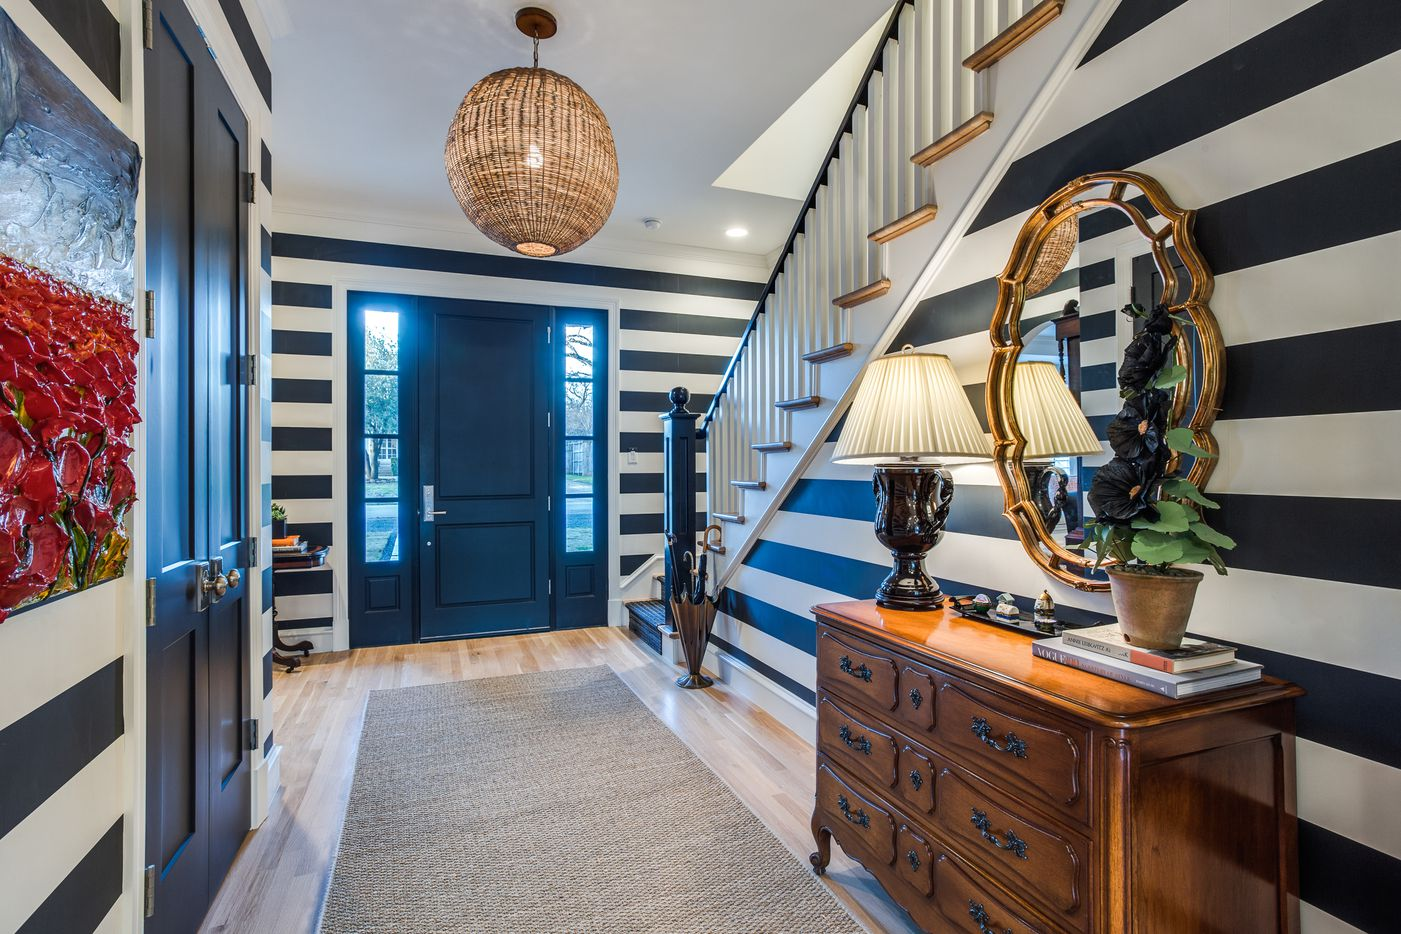 The home has almost 3,800 square feet of space.